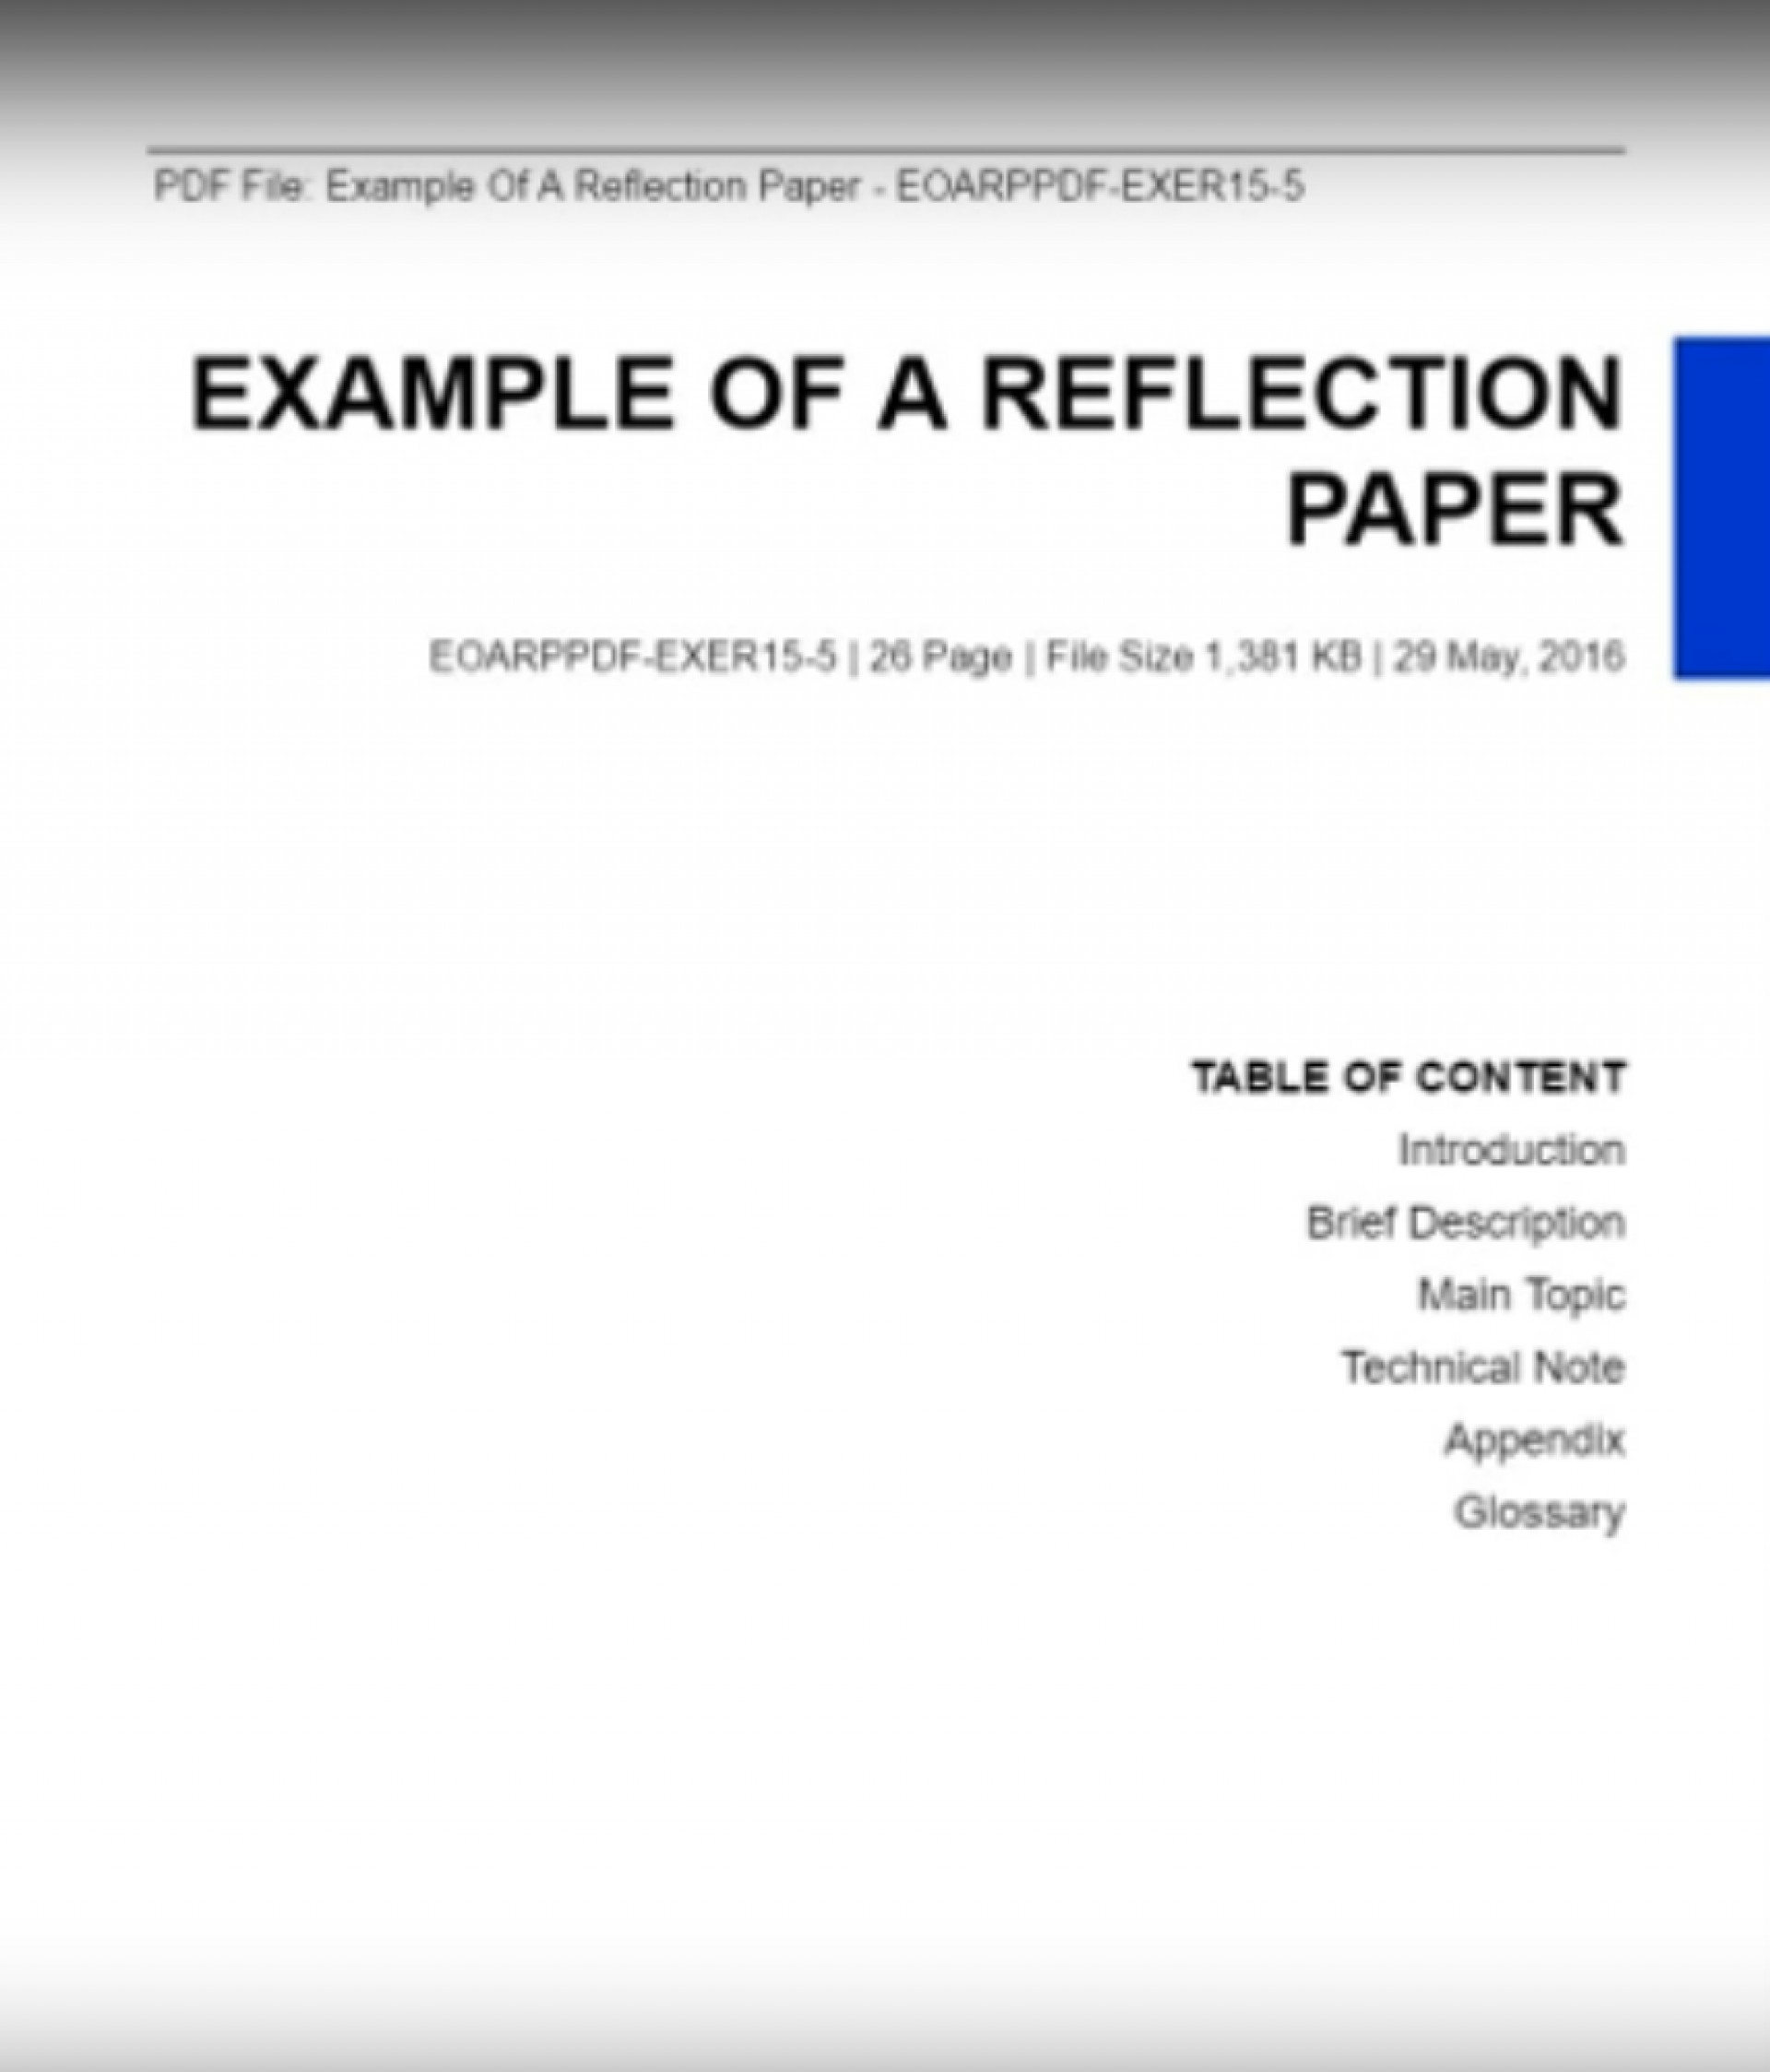 022 Reflection Paper Example Essay How To Write Awesome A Reflective Introduction On An Article Course 1920